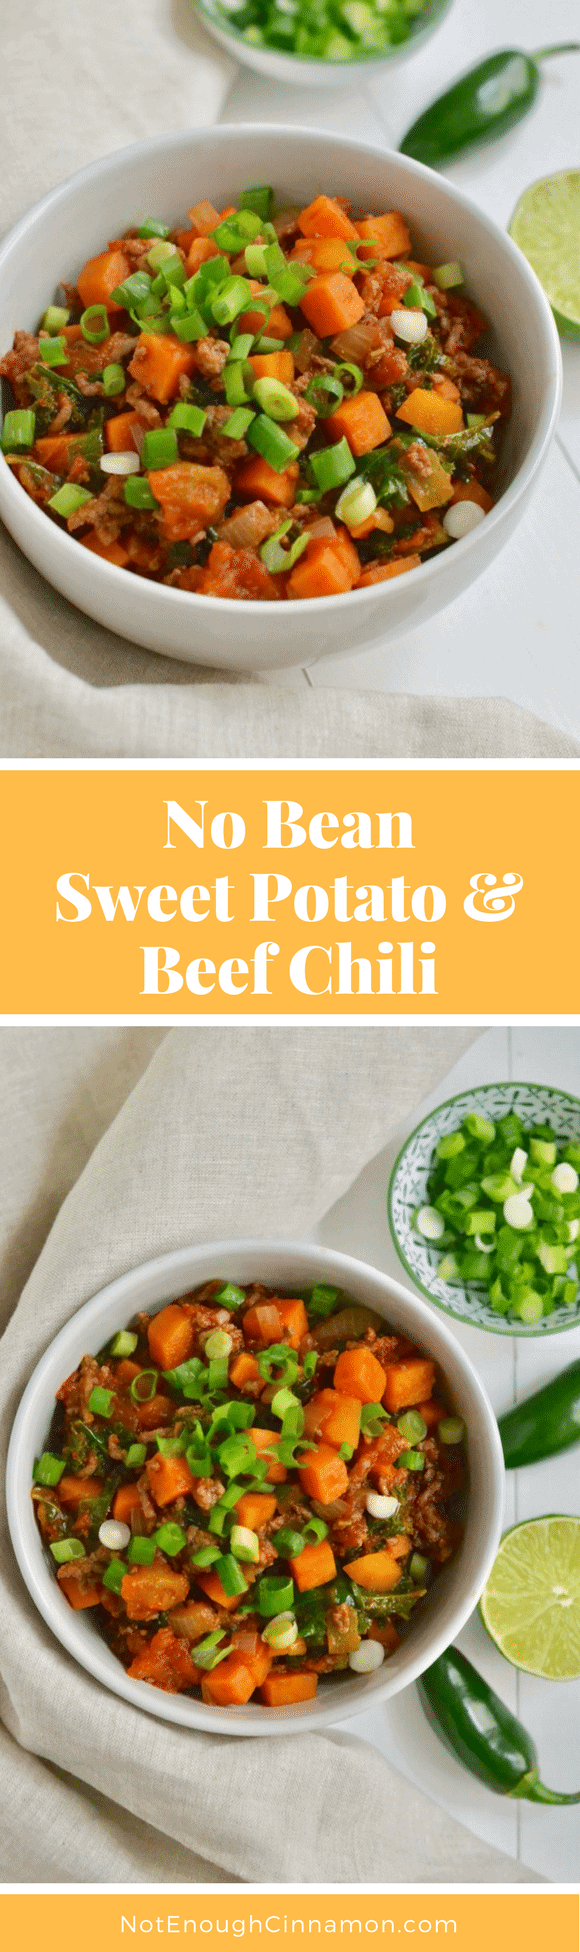 A paleo no bean chili made with sweet potatoes, beef and kale. Comforting, filling and healthy! #glutenfree #cleaneating #stew